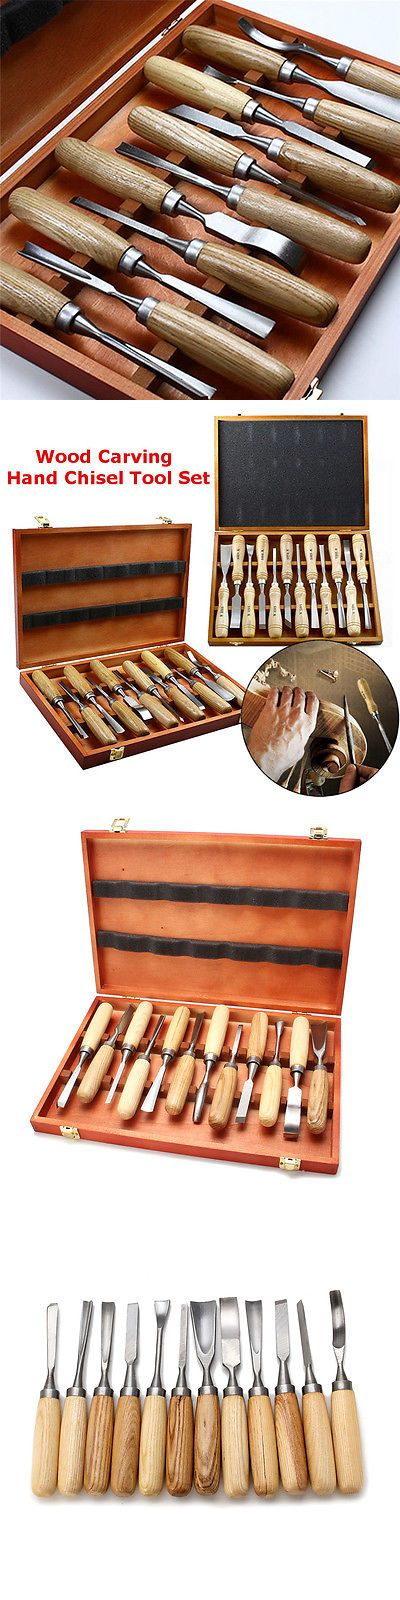 Wood Carving Hand Tools 160677: New 12 Pcs Wood Carving Hand Chisel Tool Set Woodworking Professional Gouges -> BUY IT NOW ONLY: $48.69 on eBay!